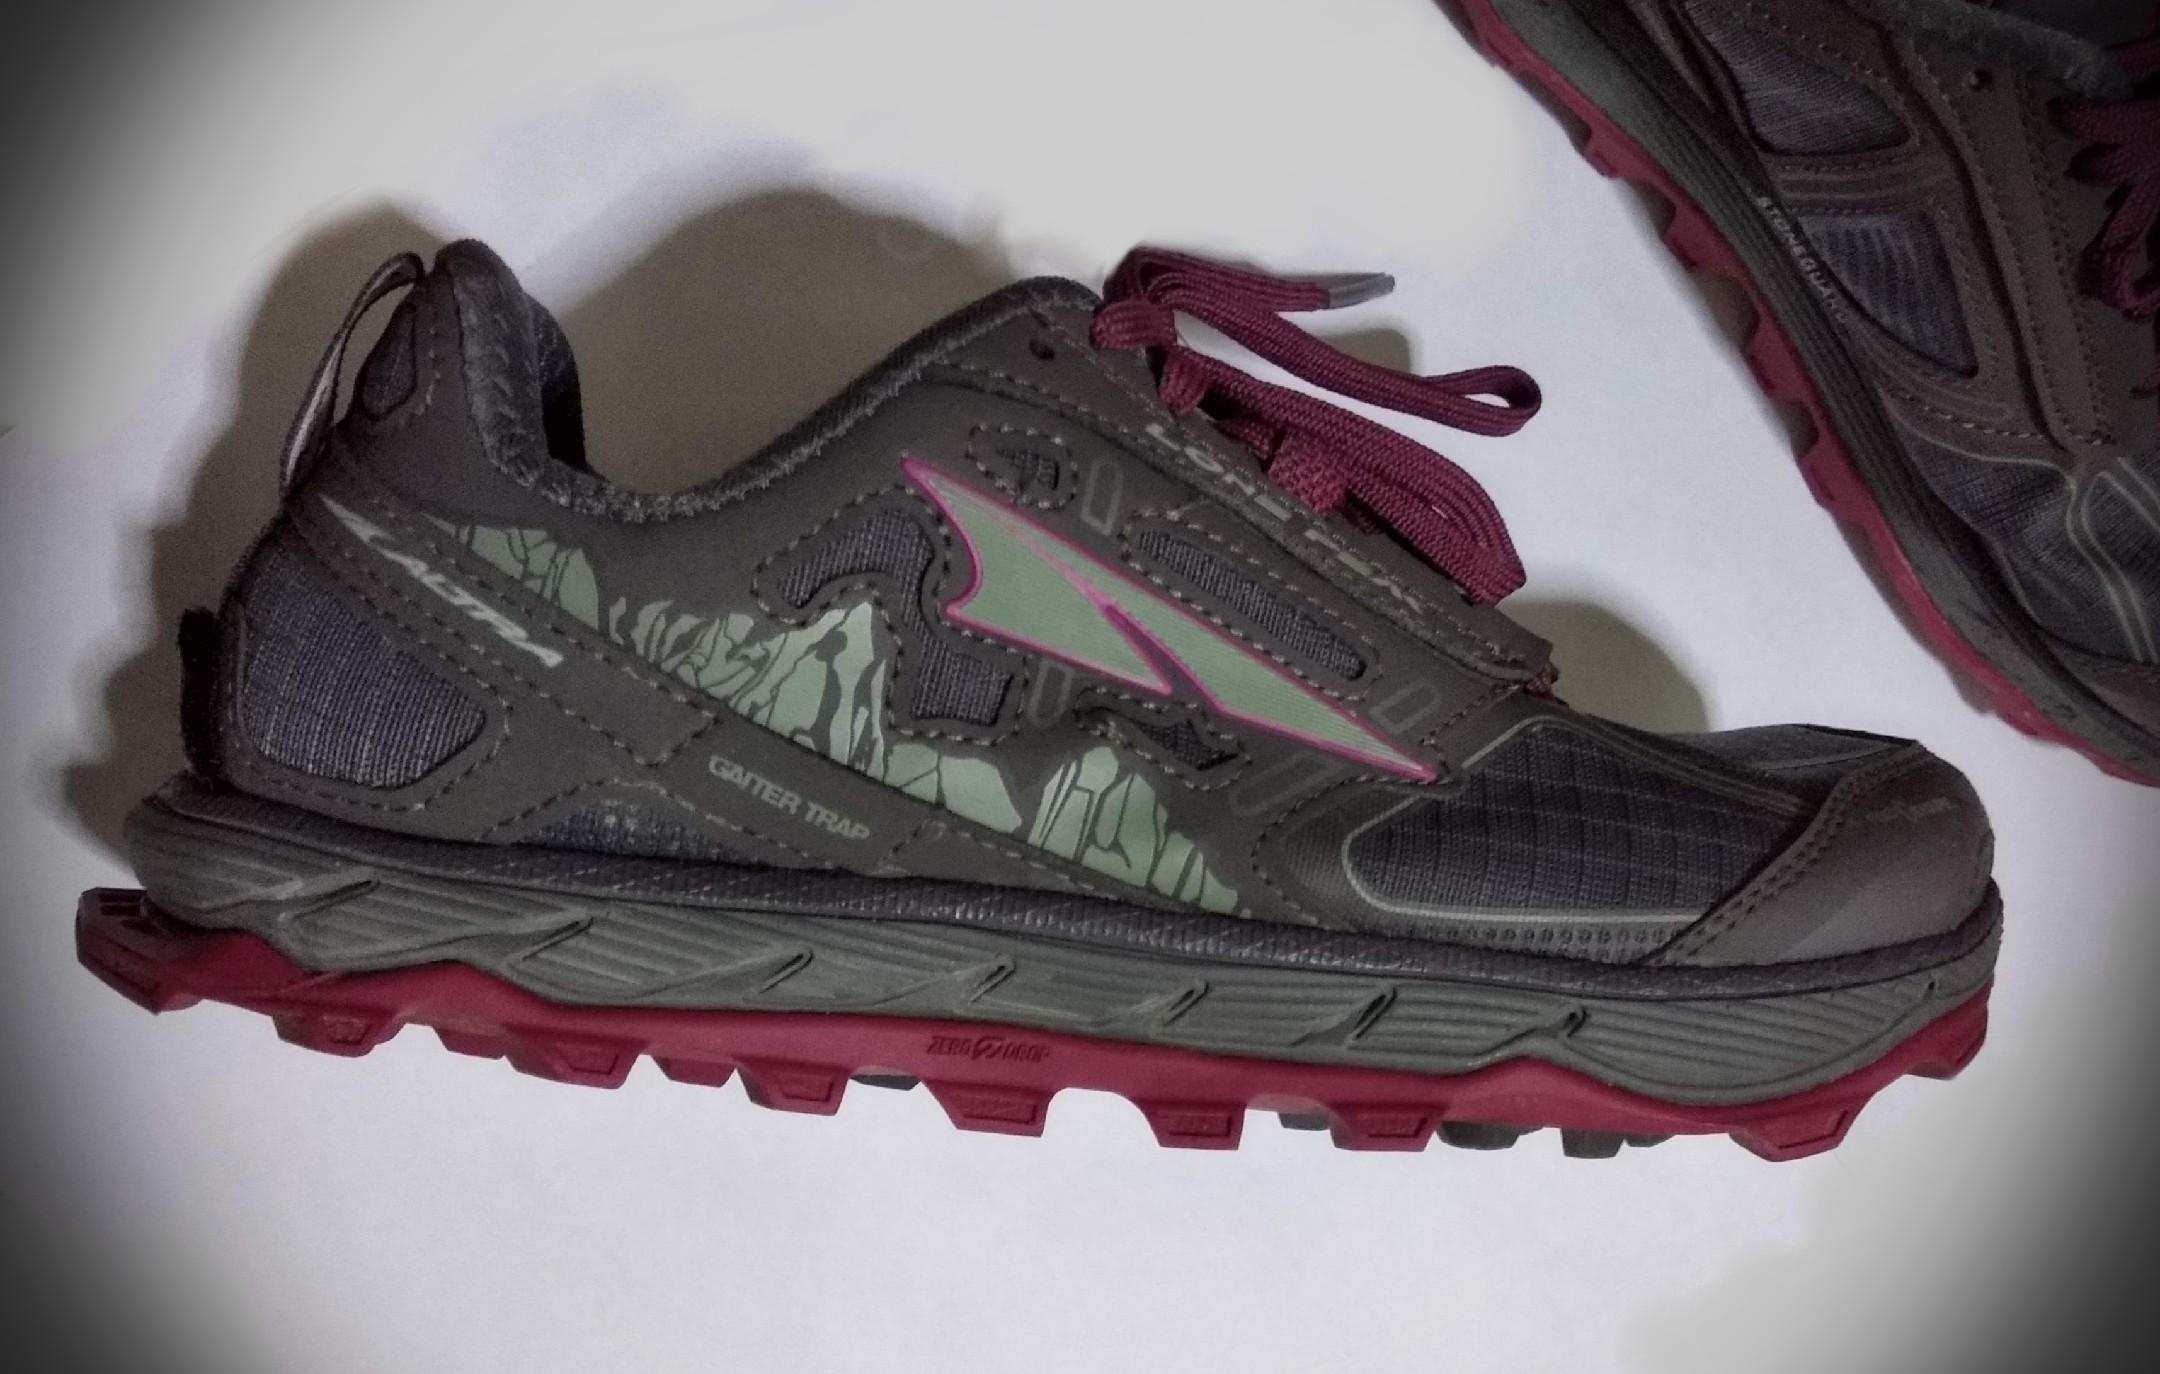 brand new 86d33 51a85 ONLY S$ 166!!! TRAIL SHOE - Altra Lone Peak 4.0 / Women ...